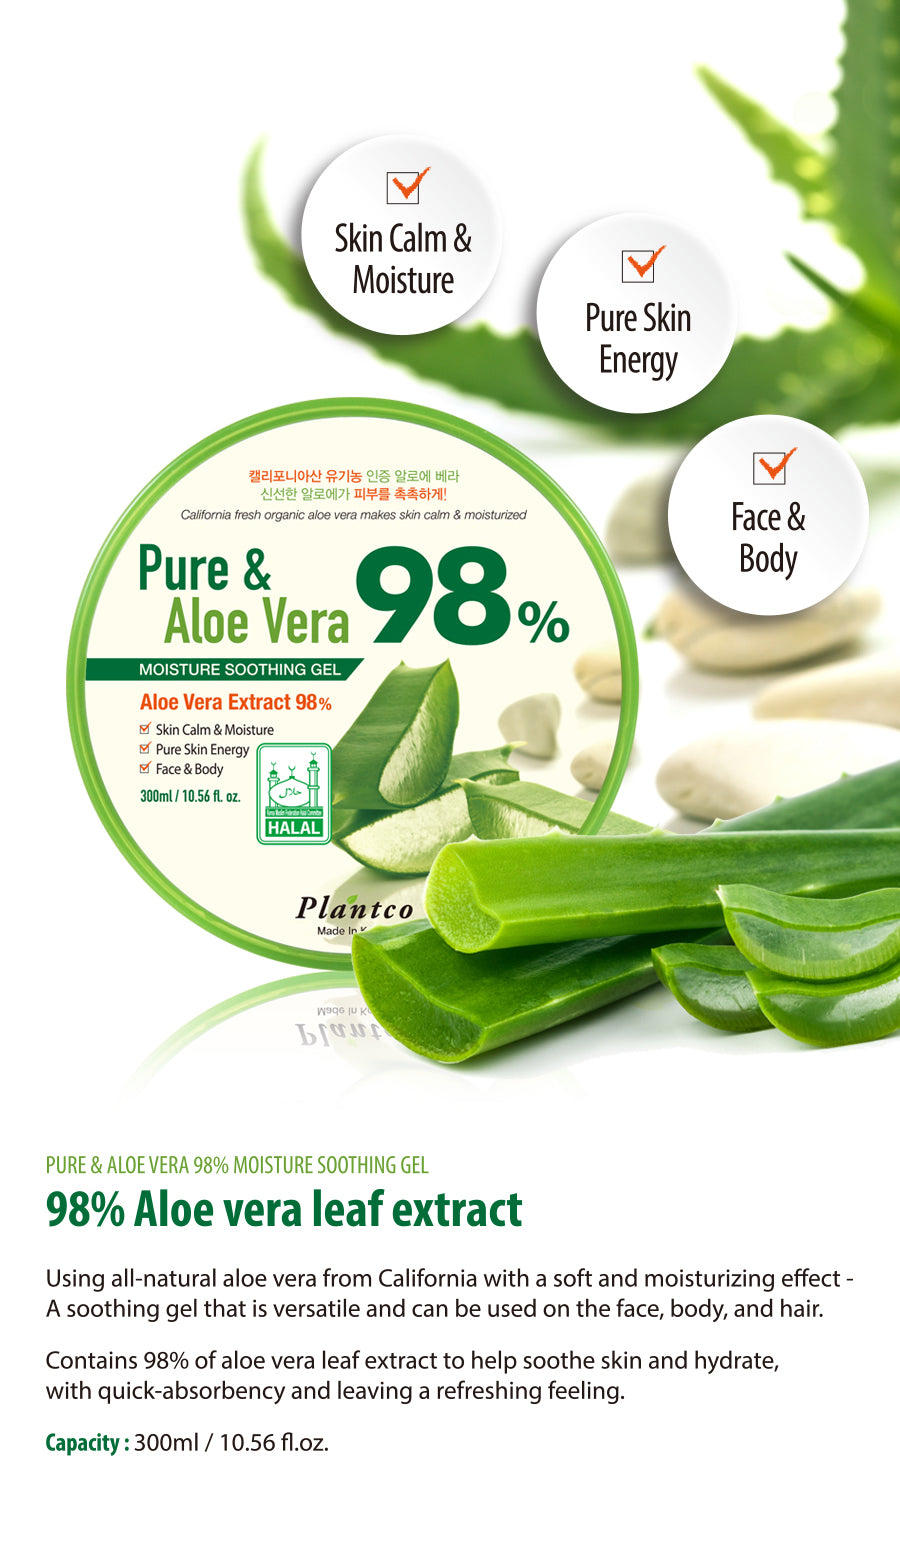 Plantco pure and aloevera 98% moisture soothing gel